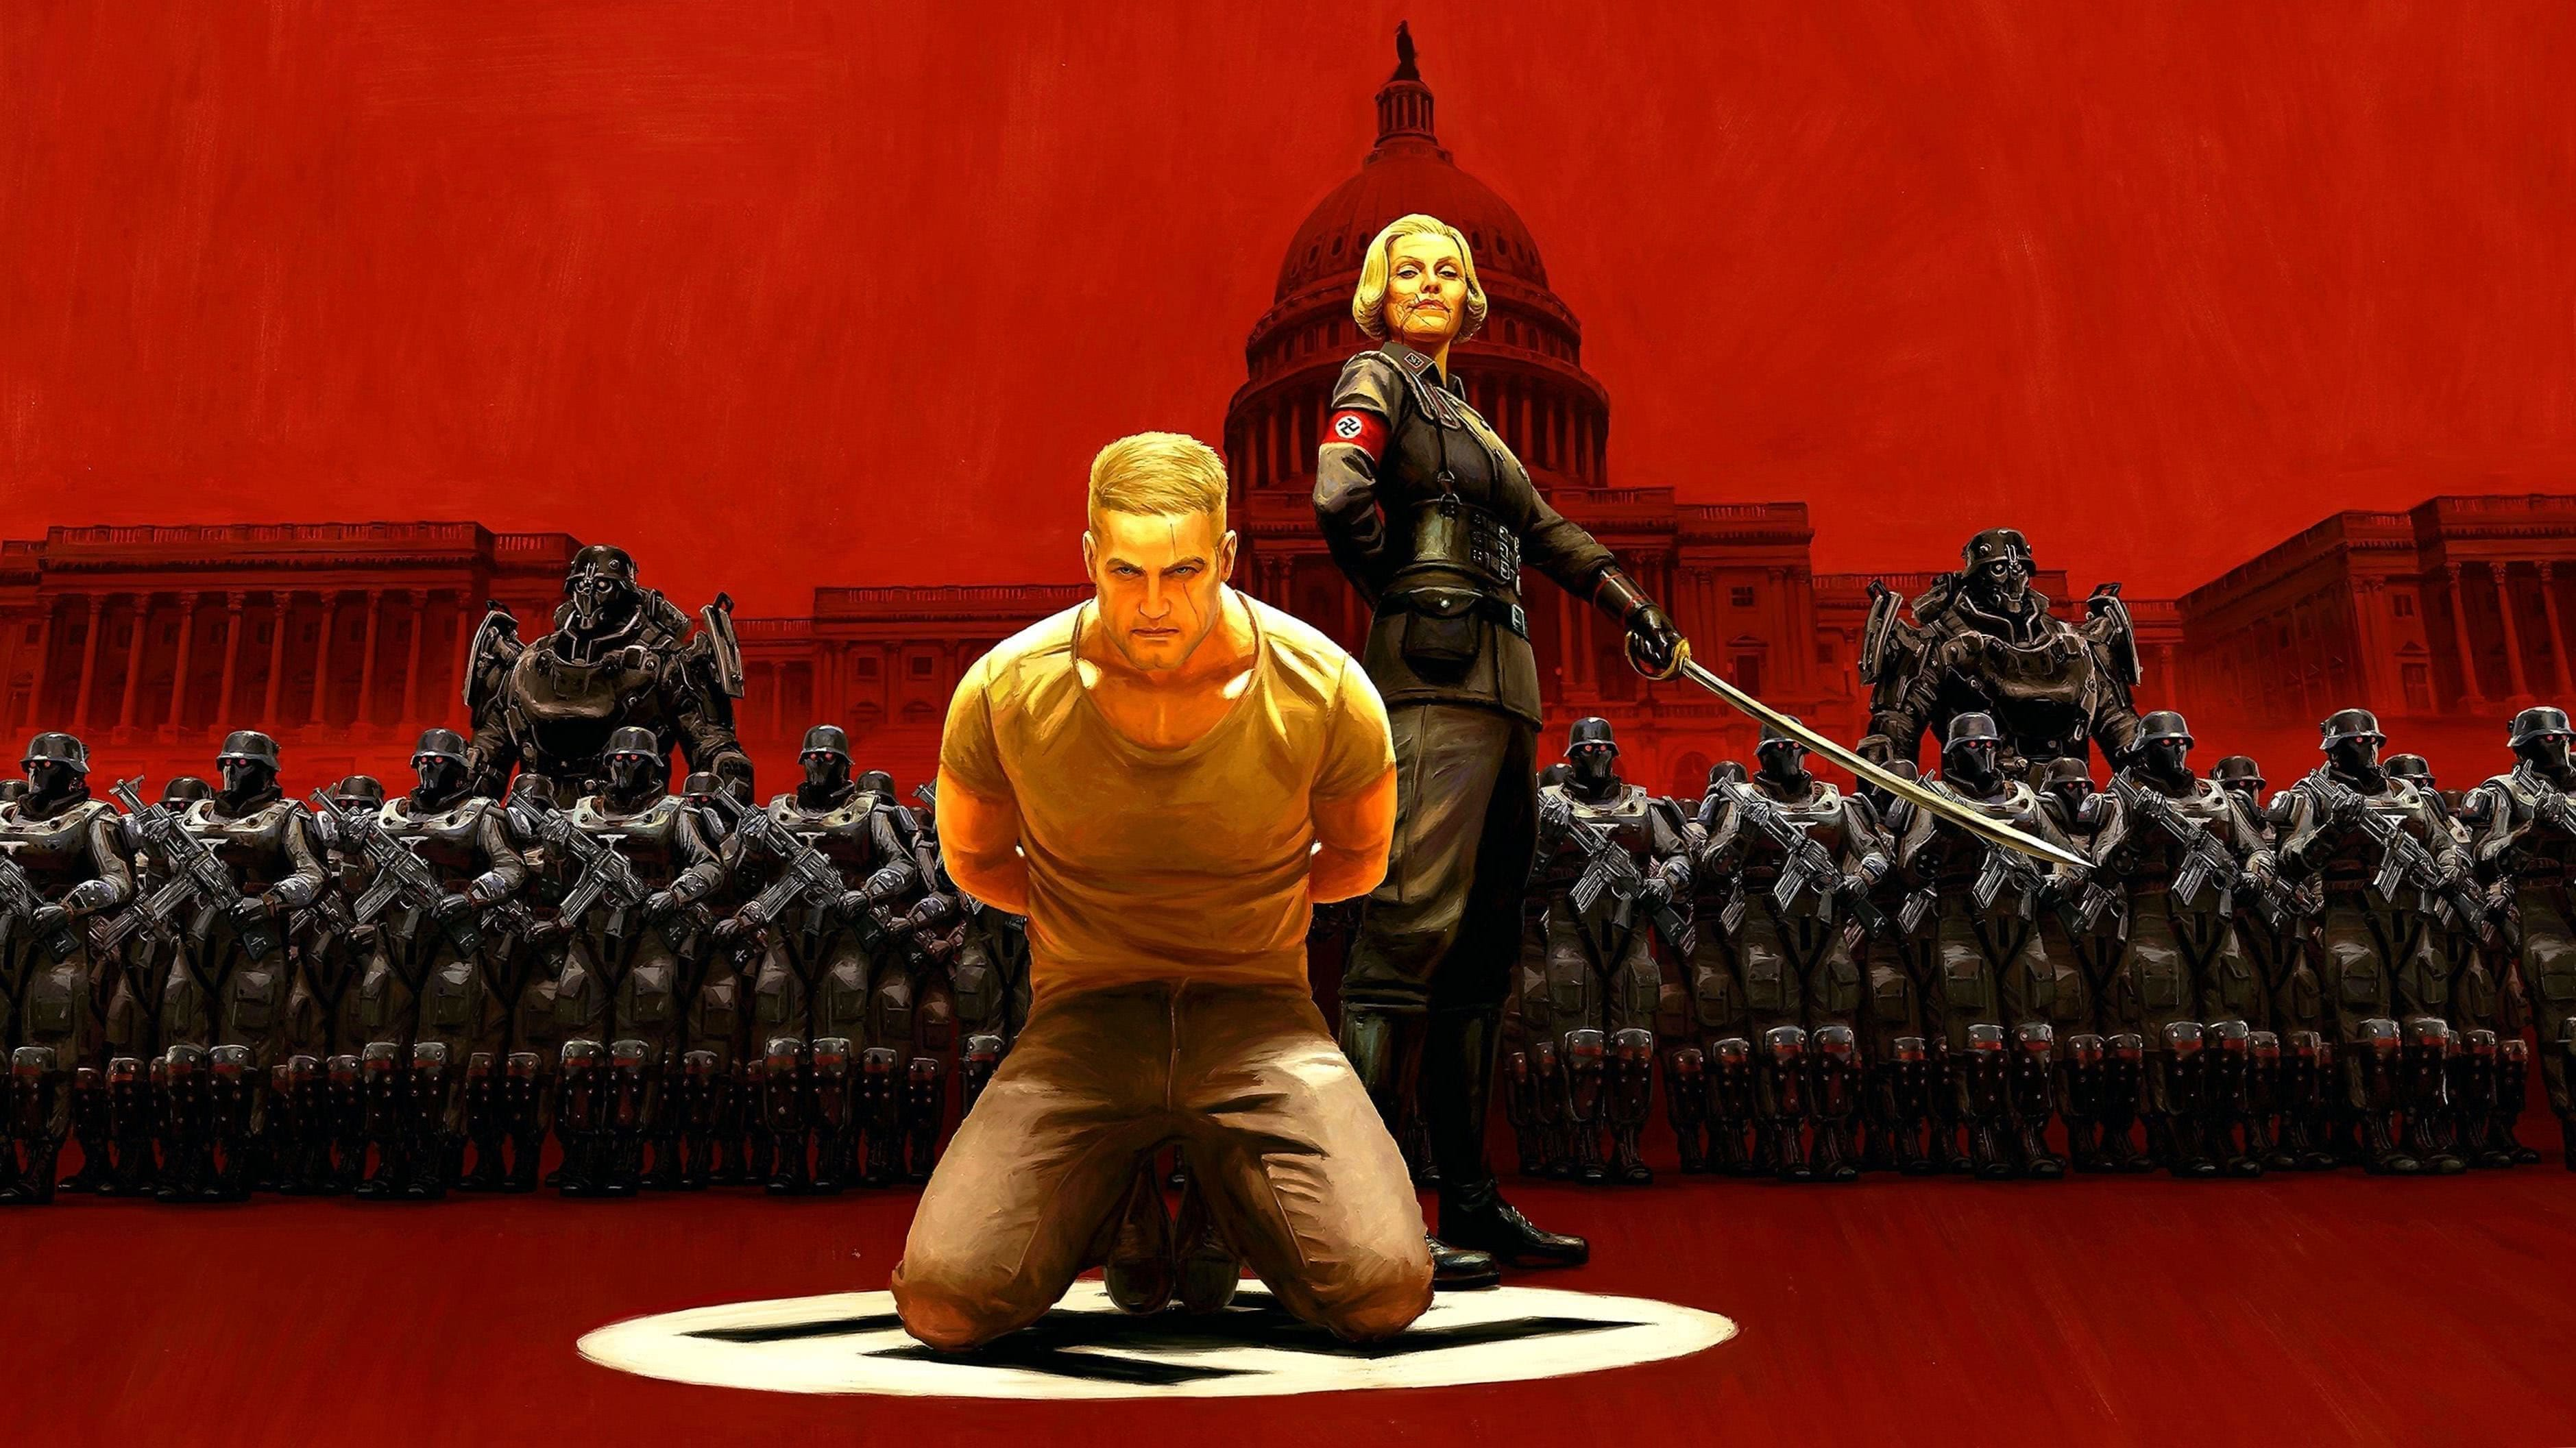 Wolfenstein 2 The New Colossus Wallpapers Hd Wolf Wallpapers Pro